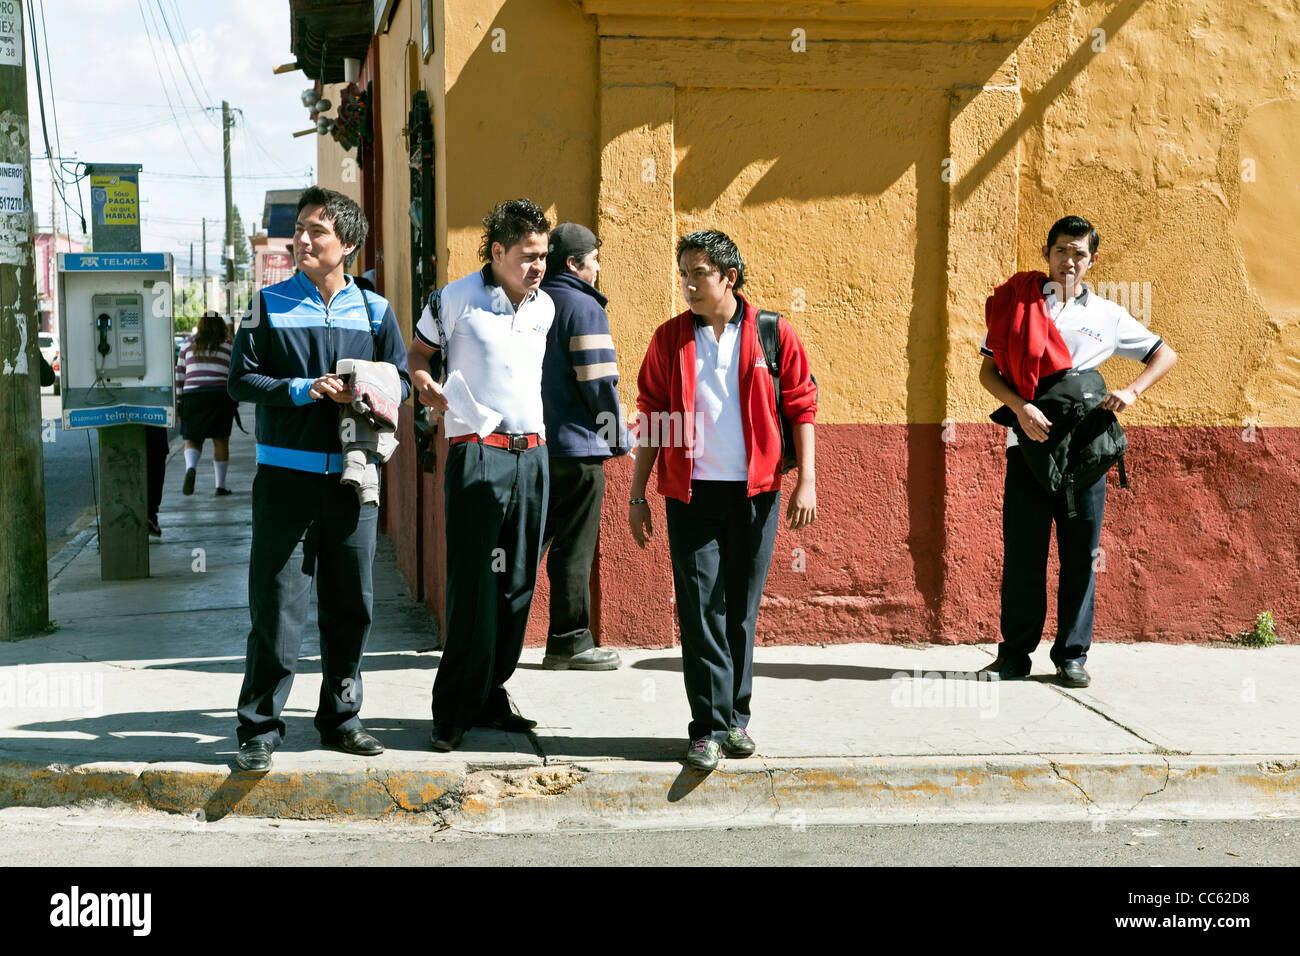 group of good humored teenage Mexican high school boys standing on street corner after school in front of colorful Stock Photo